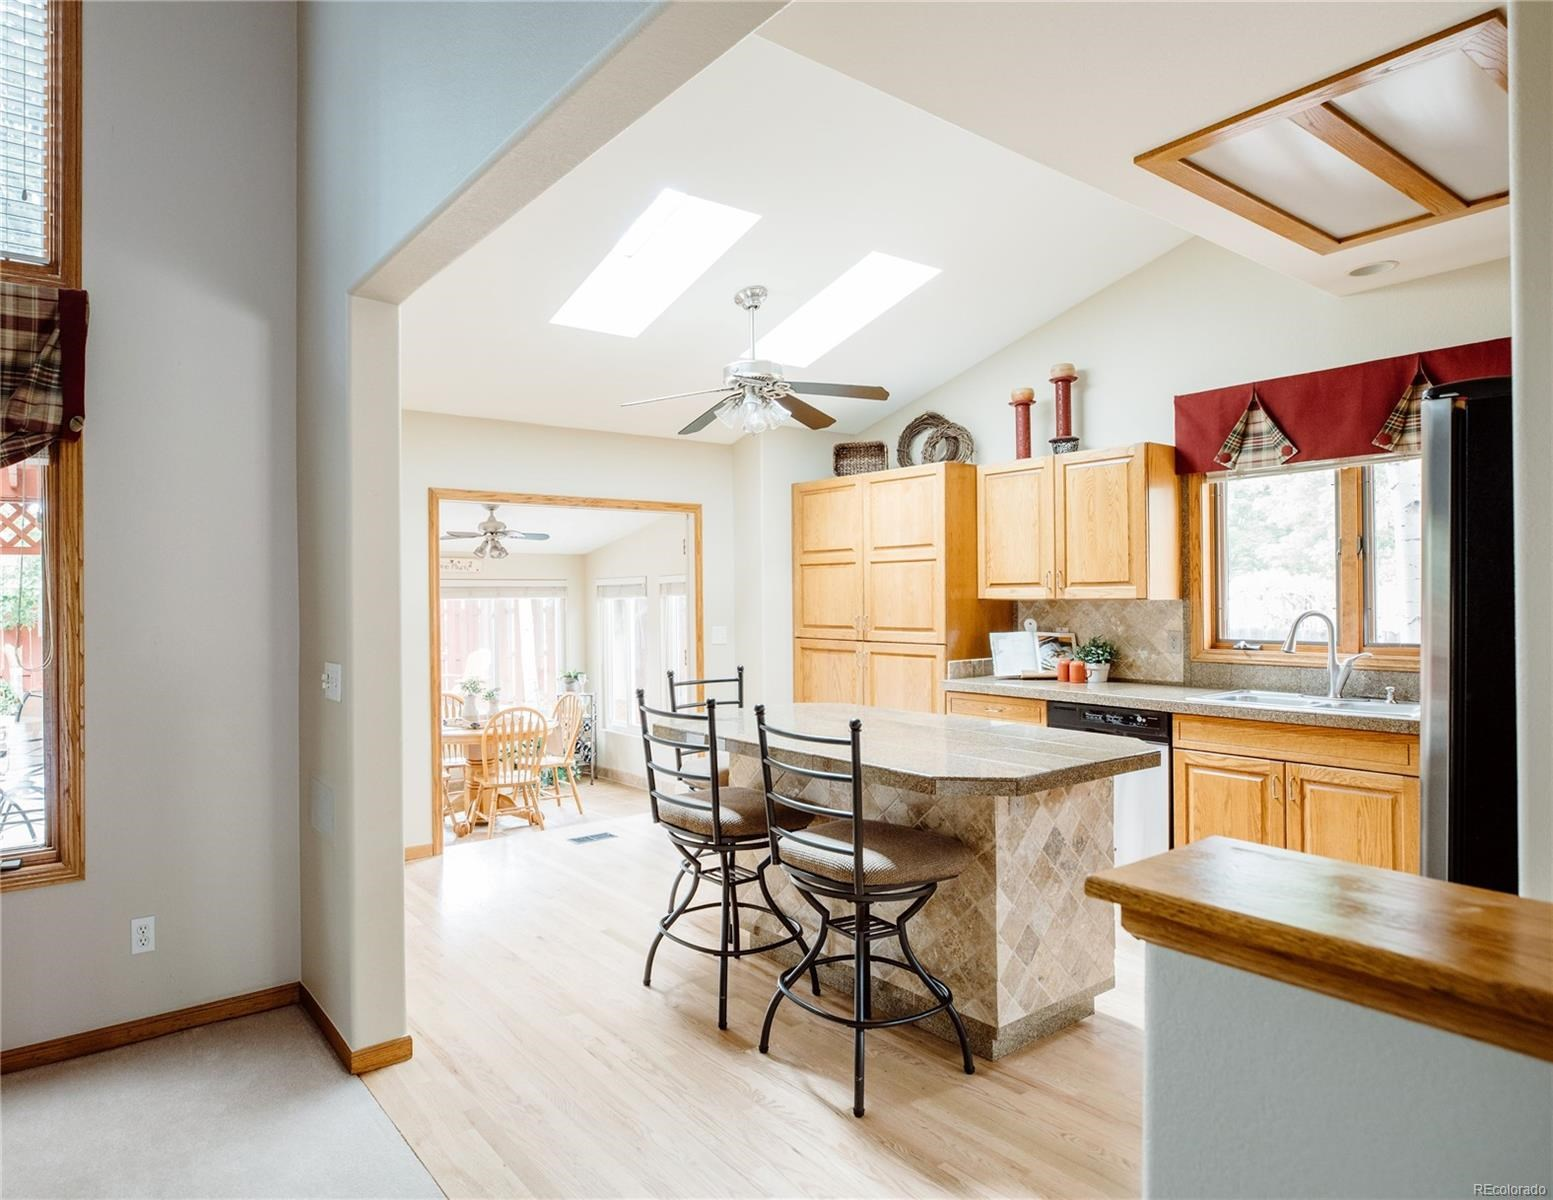 MLS# 4033949 - 13 - 3713 Ashmount Drive, Fort Collins, CO 80525